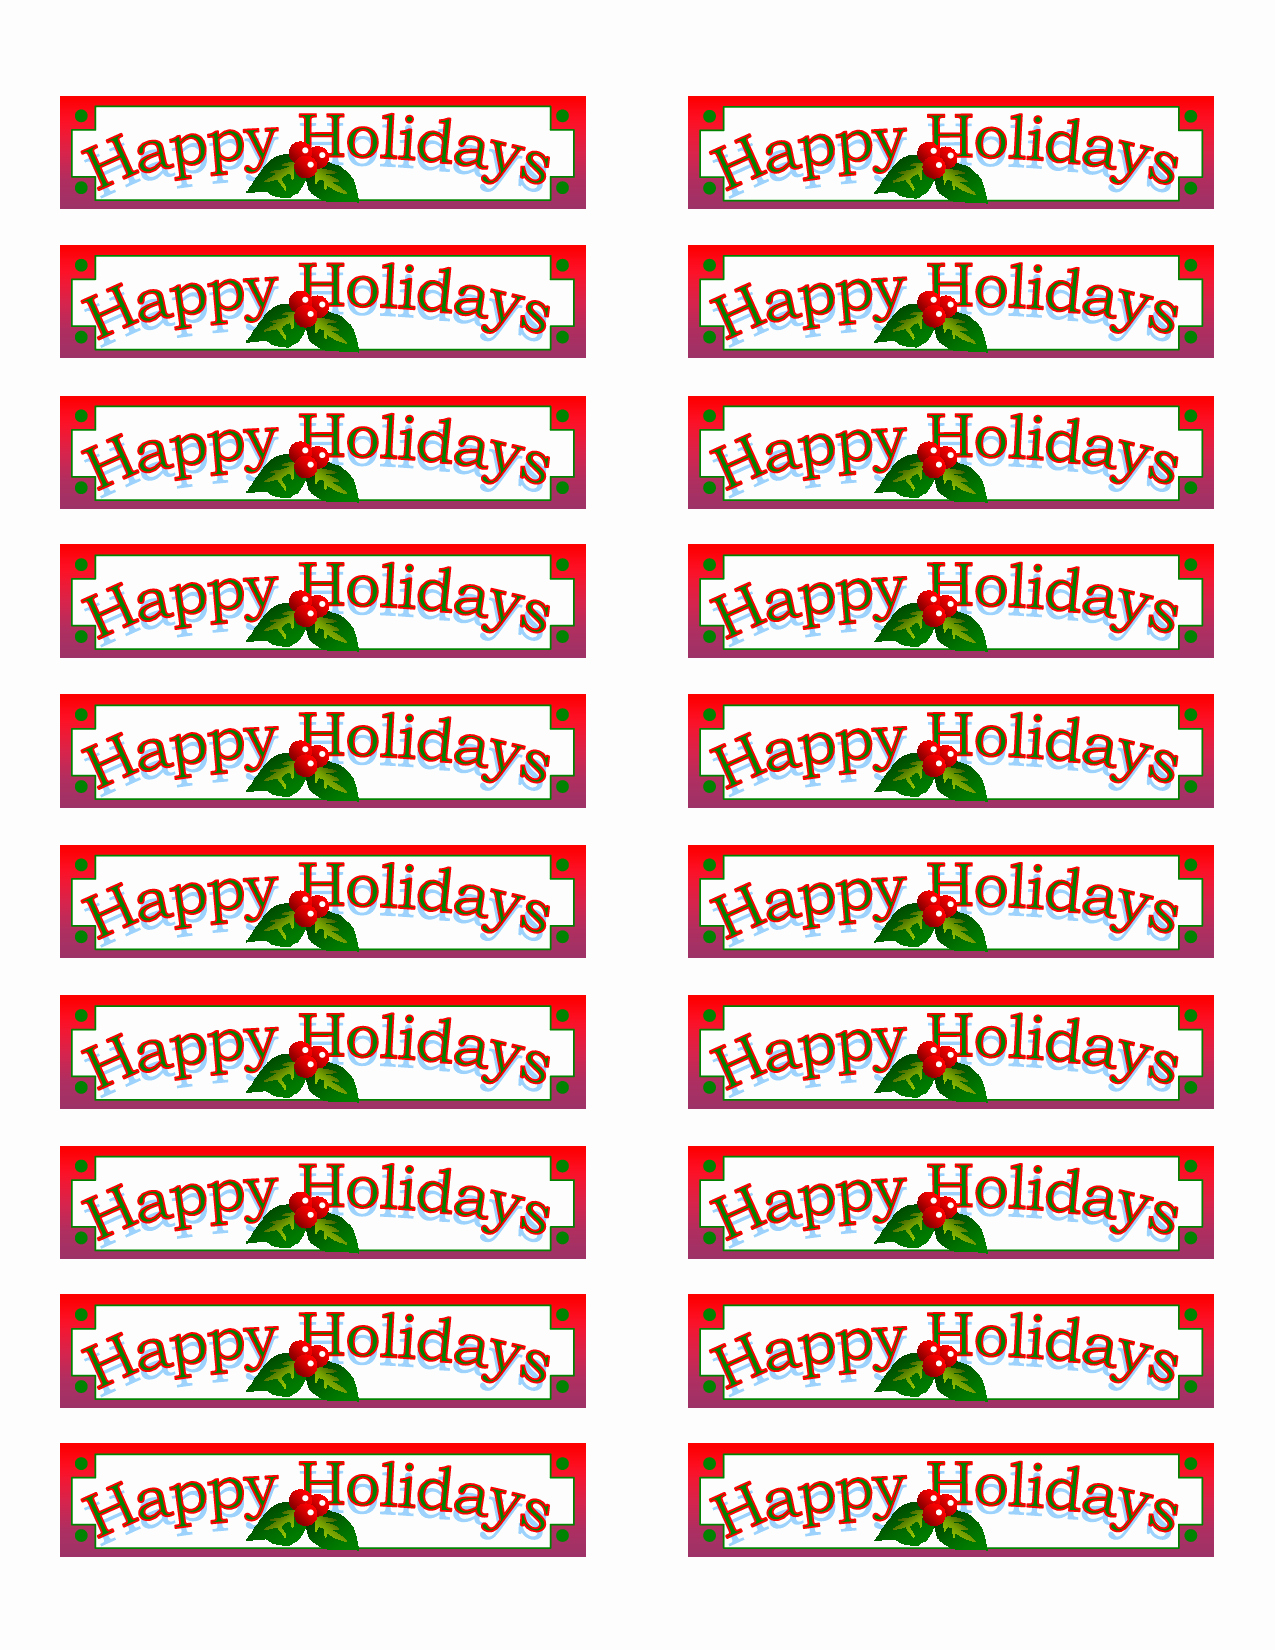 Holiday Return Address Label Templates New Christmas Return Address Labels Template Avery 5160 top